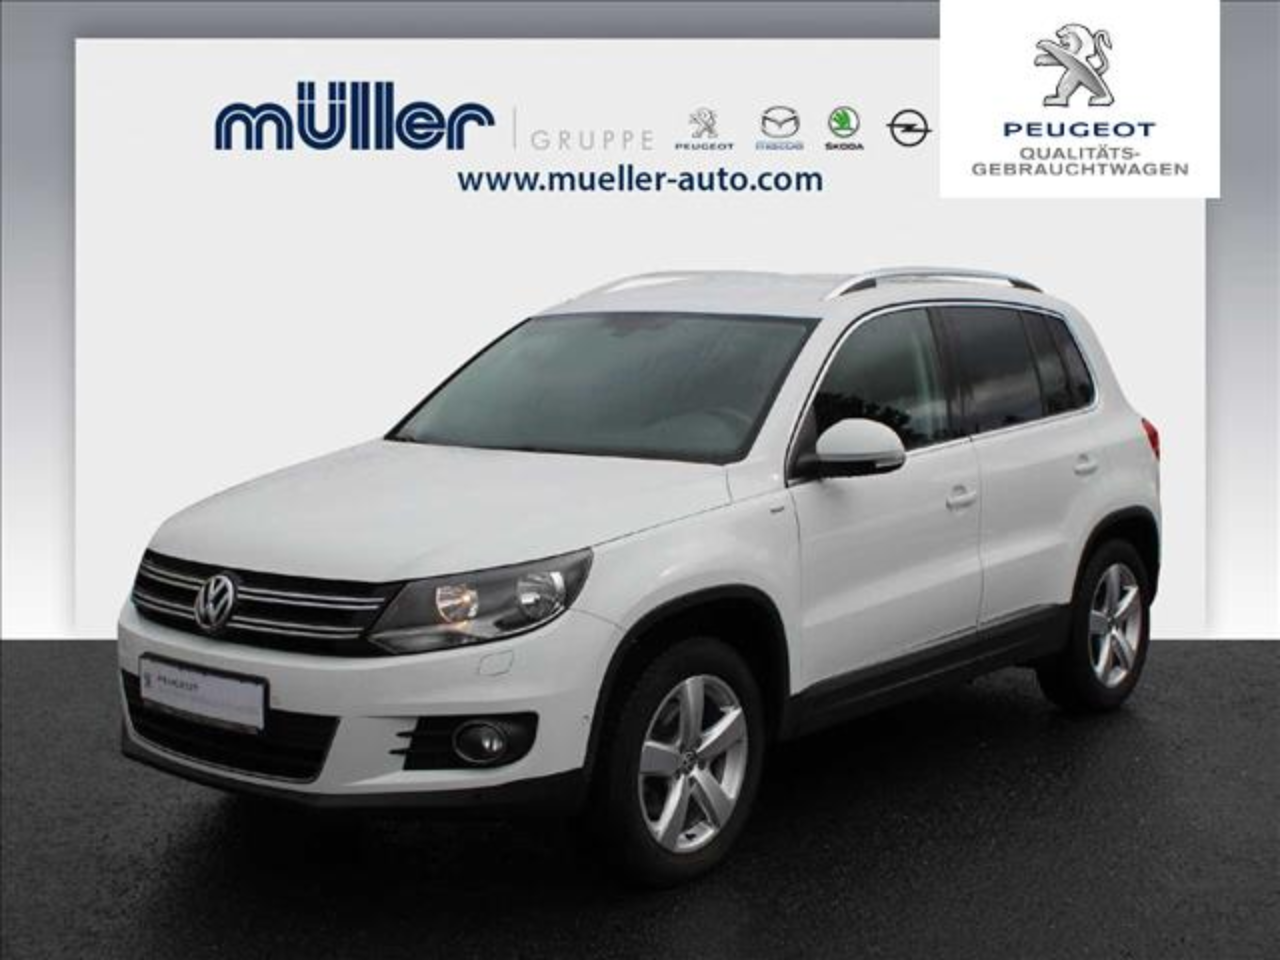 Volkswagen Tiguan 2.0 TDI 4Motion Cup Sport & Style